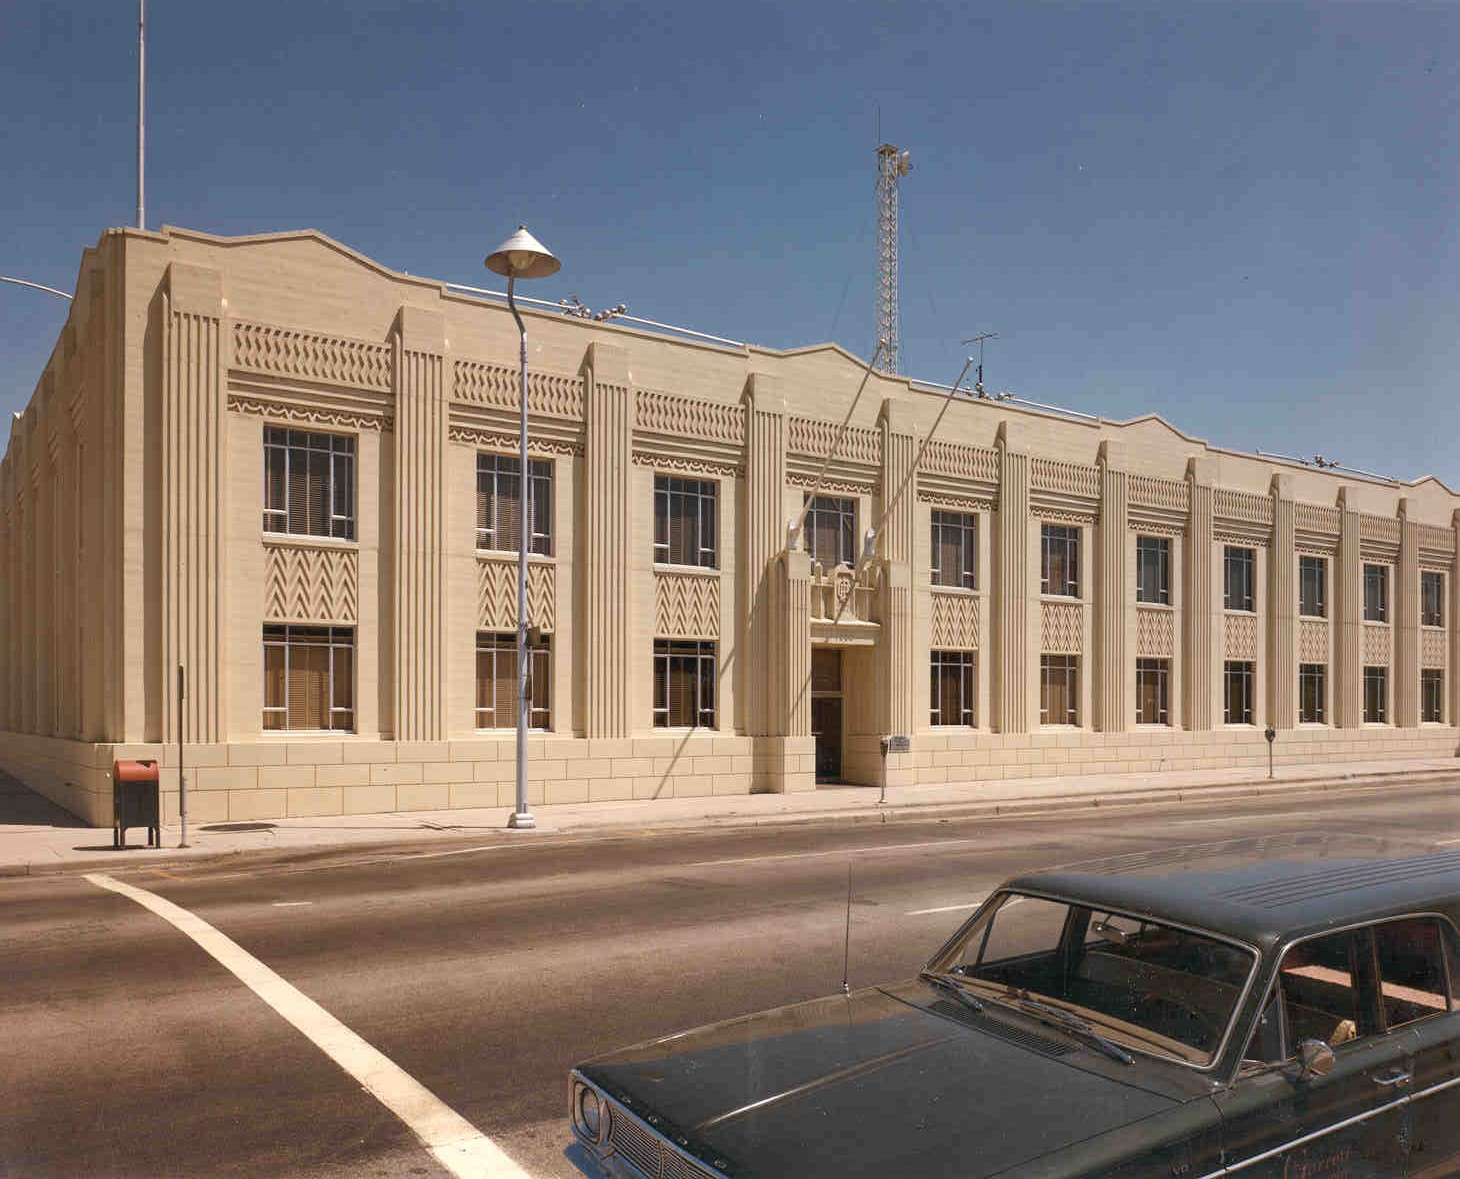 Idaho Power building : 1930 - Addition : 1956